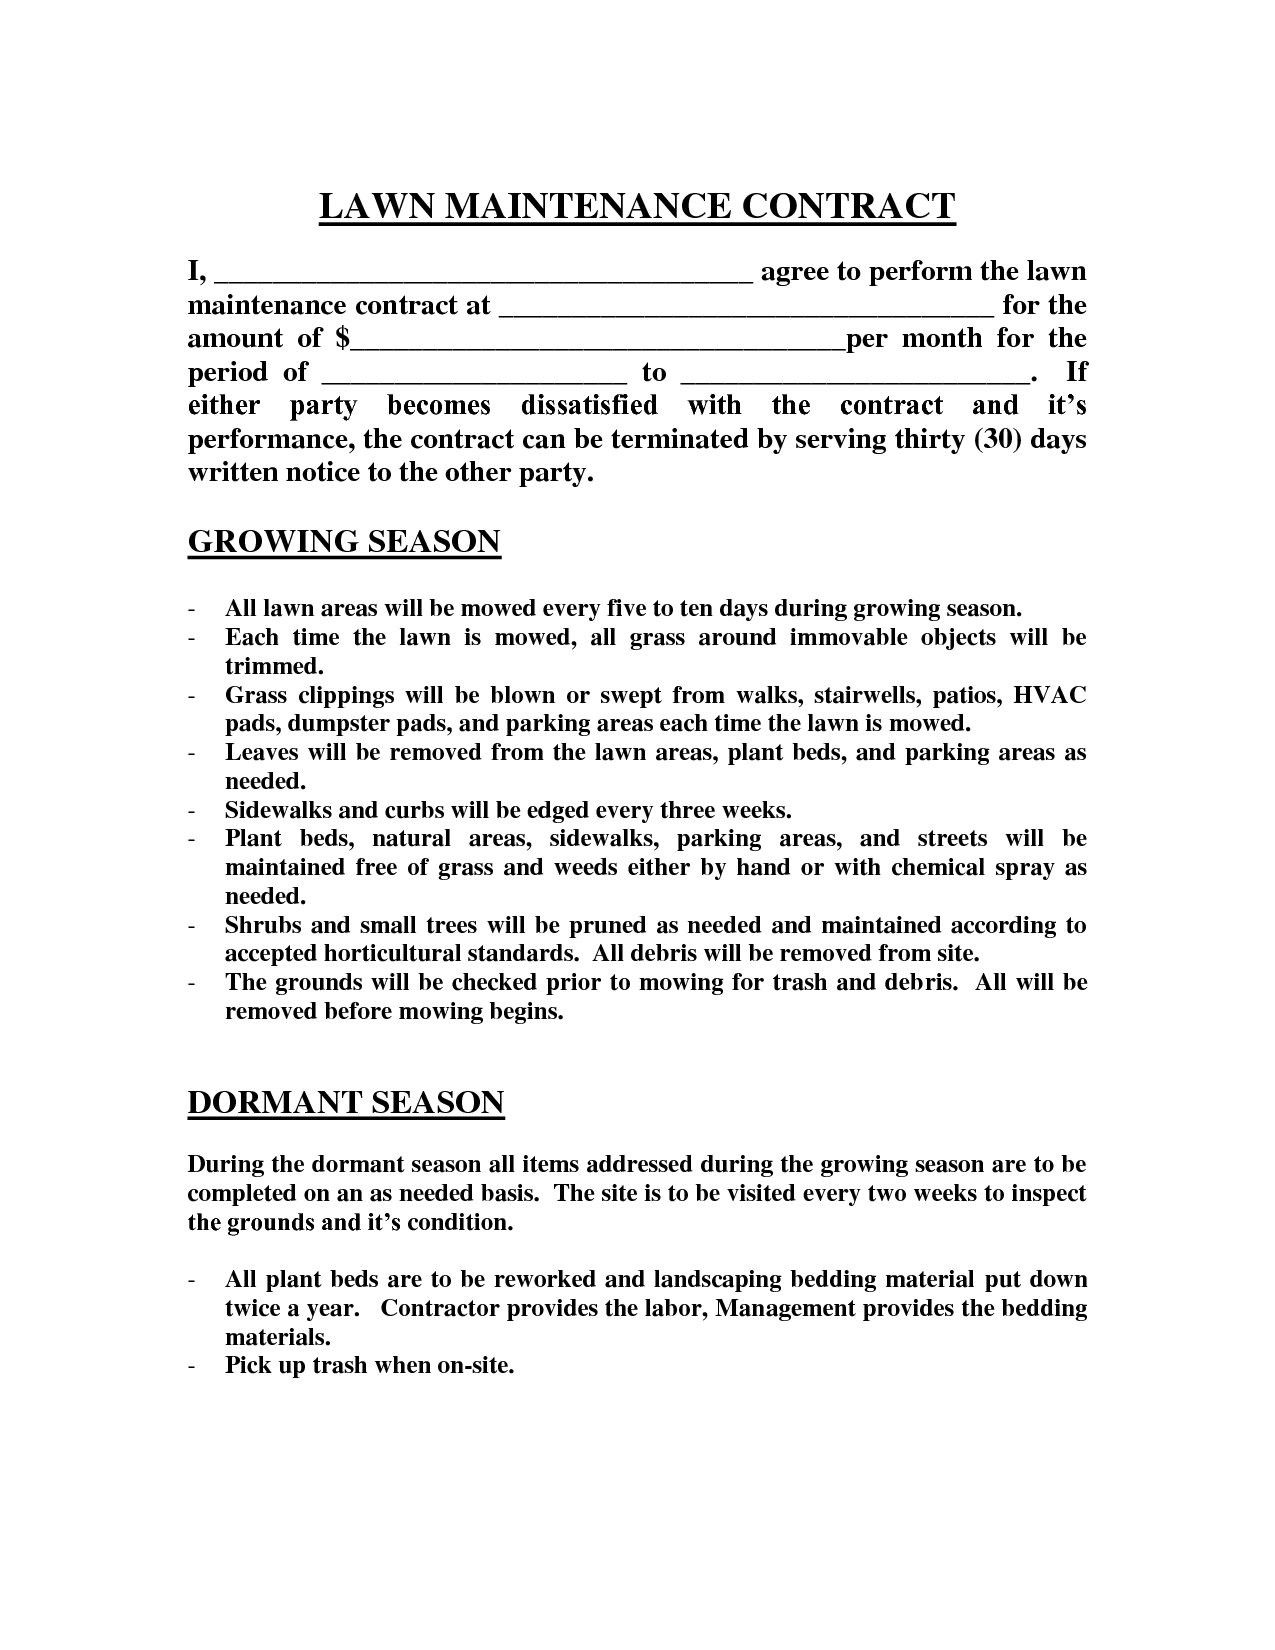 Lawn maintenance contract images lawn maintenance for Garden maintenance contract template